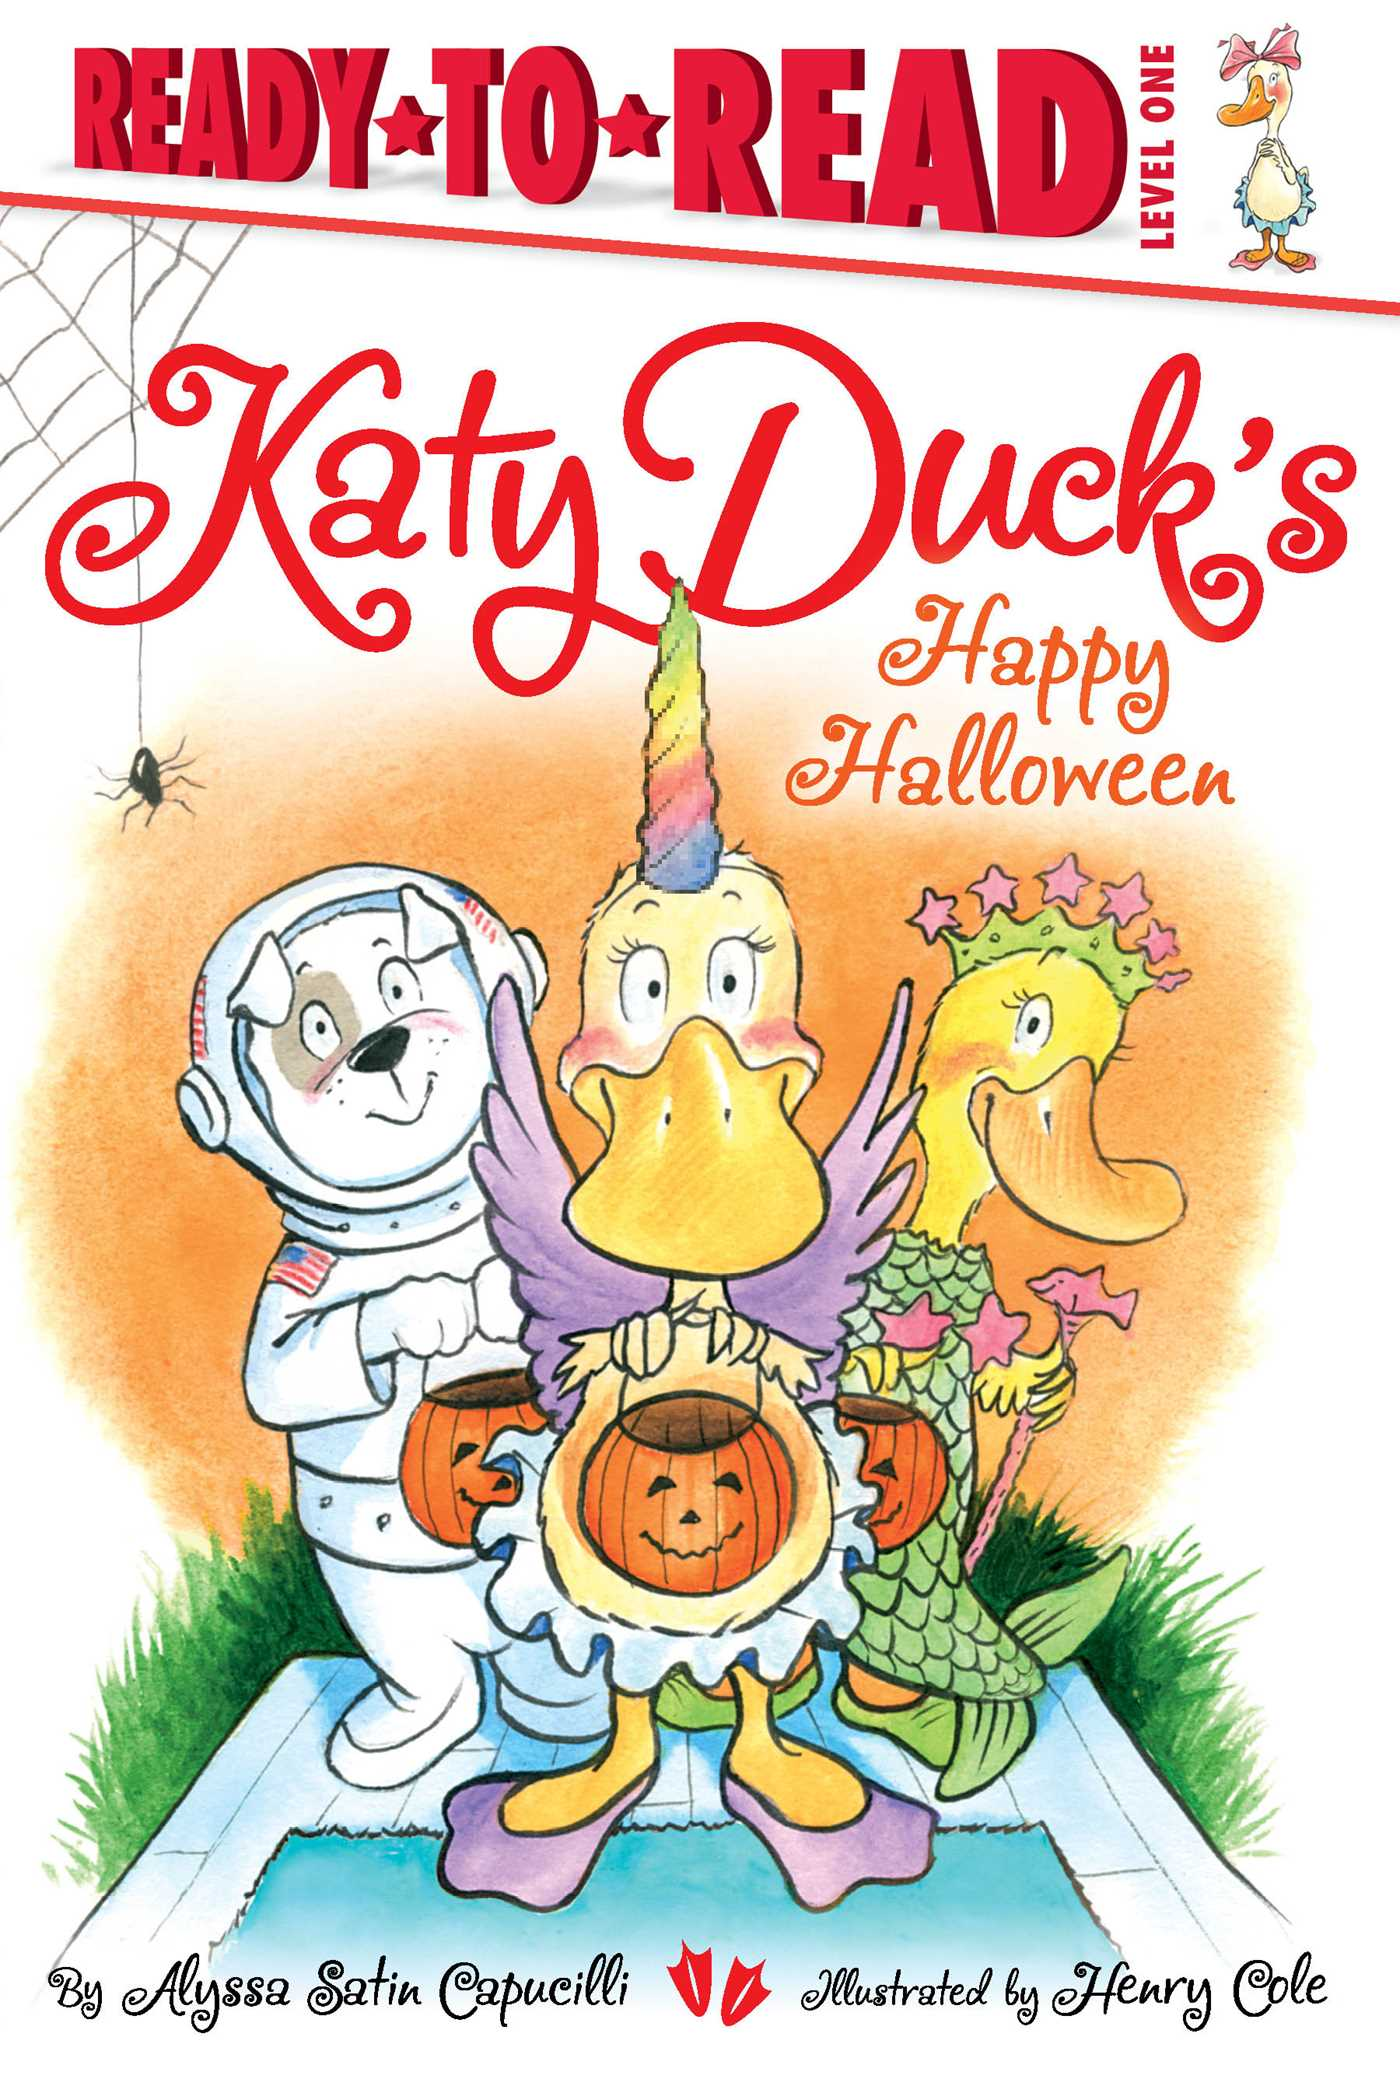 Katy-ducks-happy-halloween-9781442498068_hr